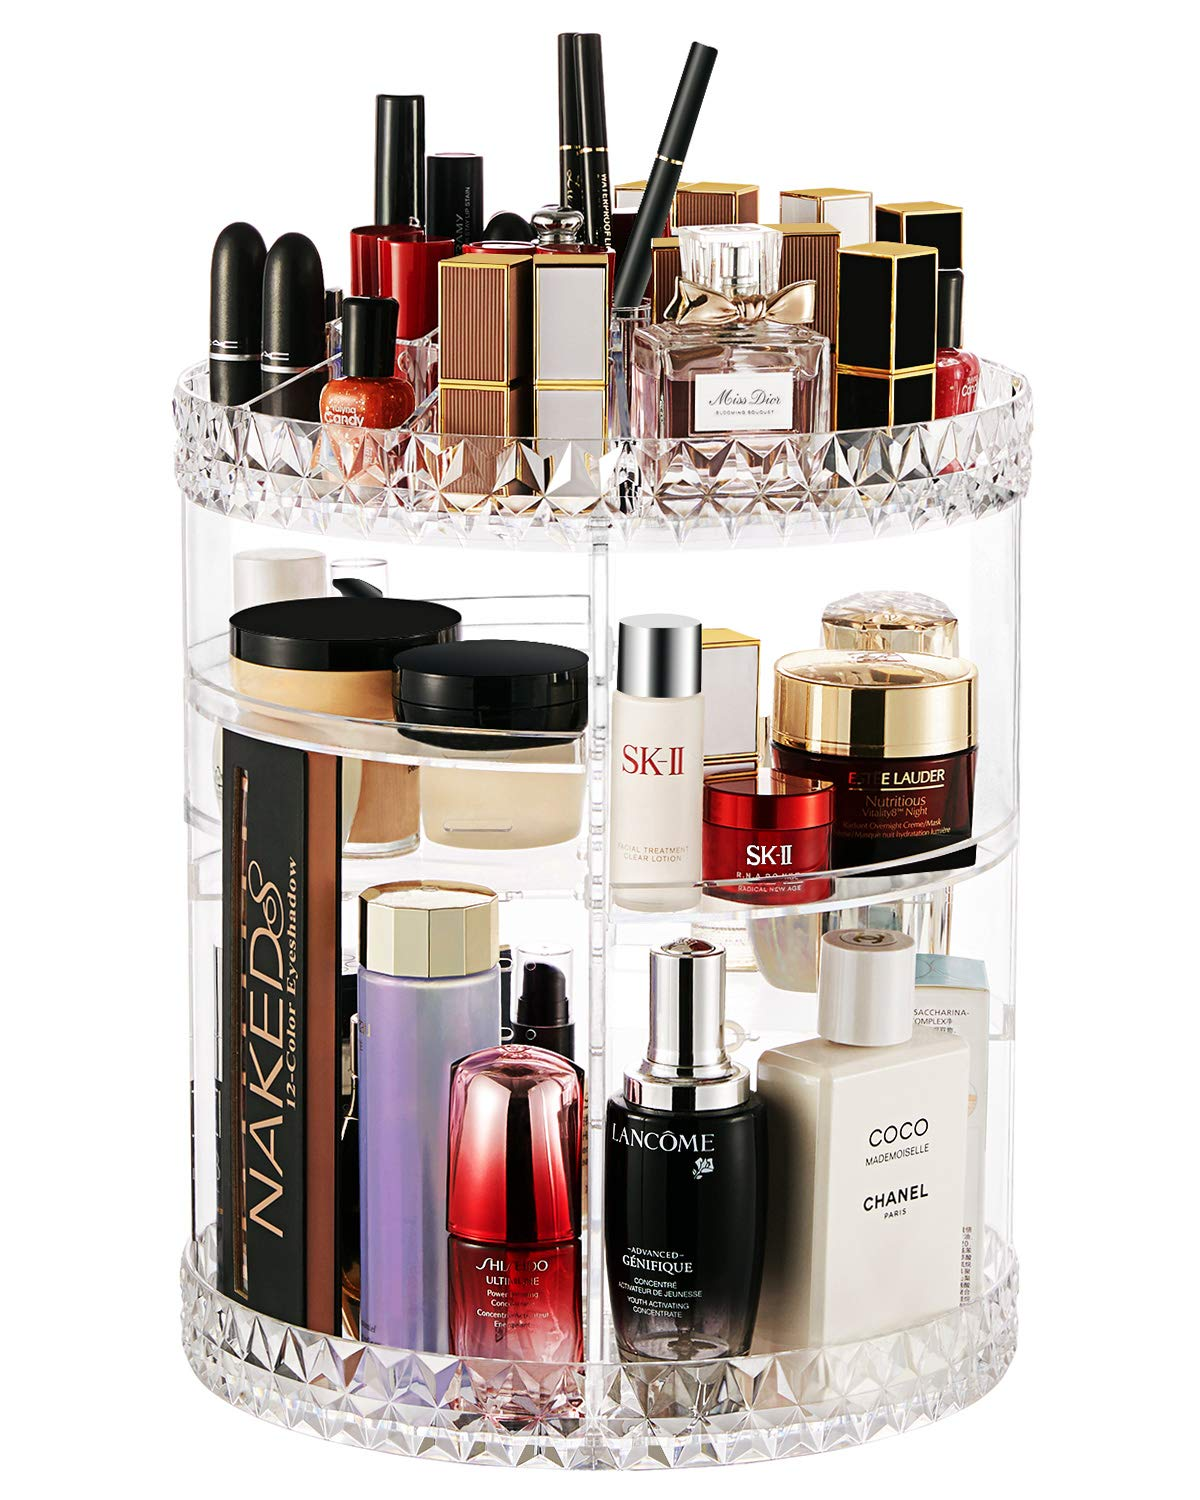 360 Rotating Makeup Organizer Adjustable Cosmetic and Beauty Holder Storage Display